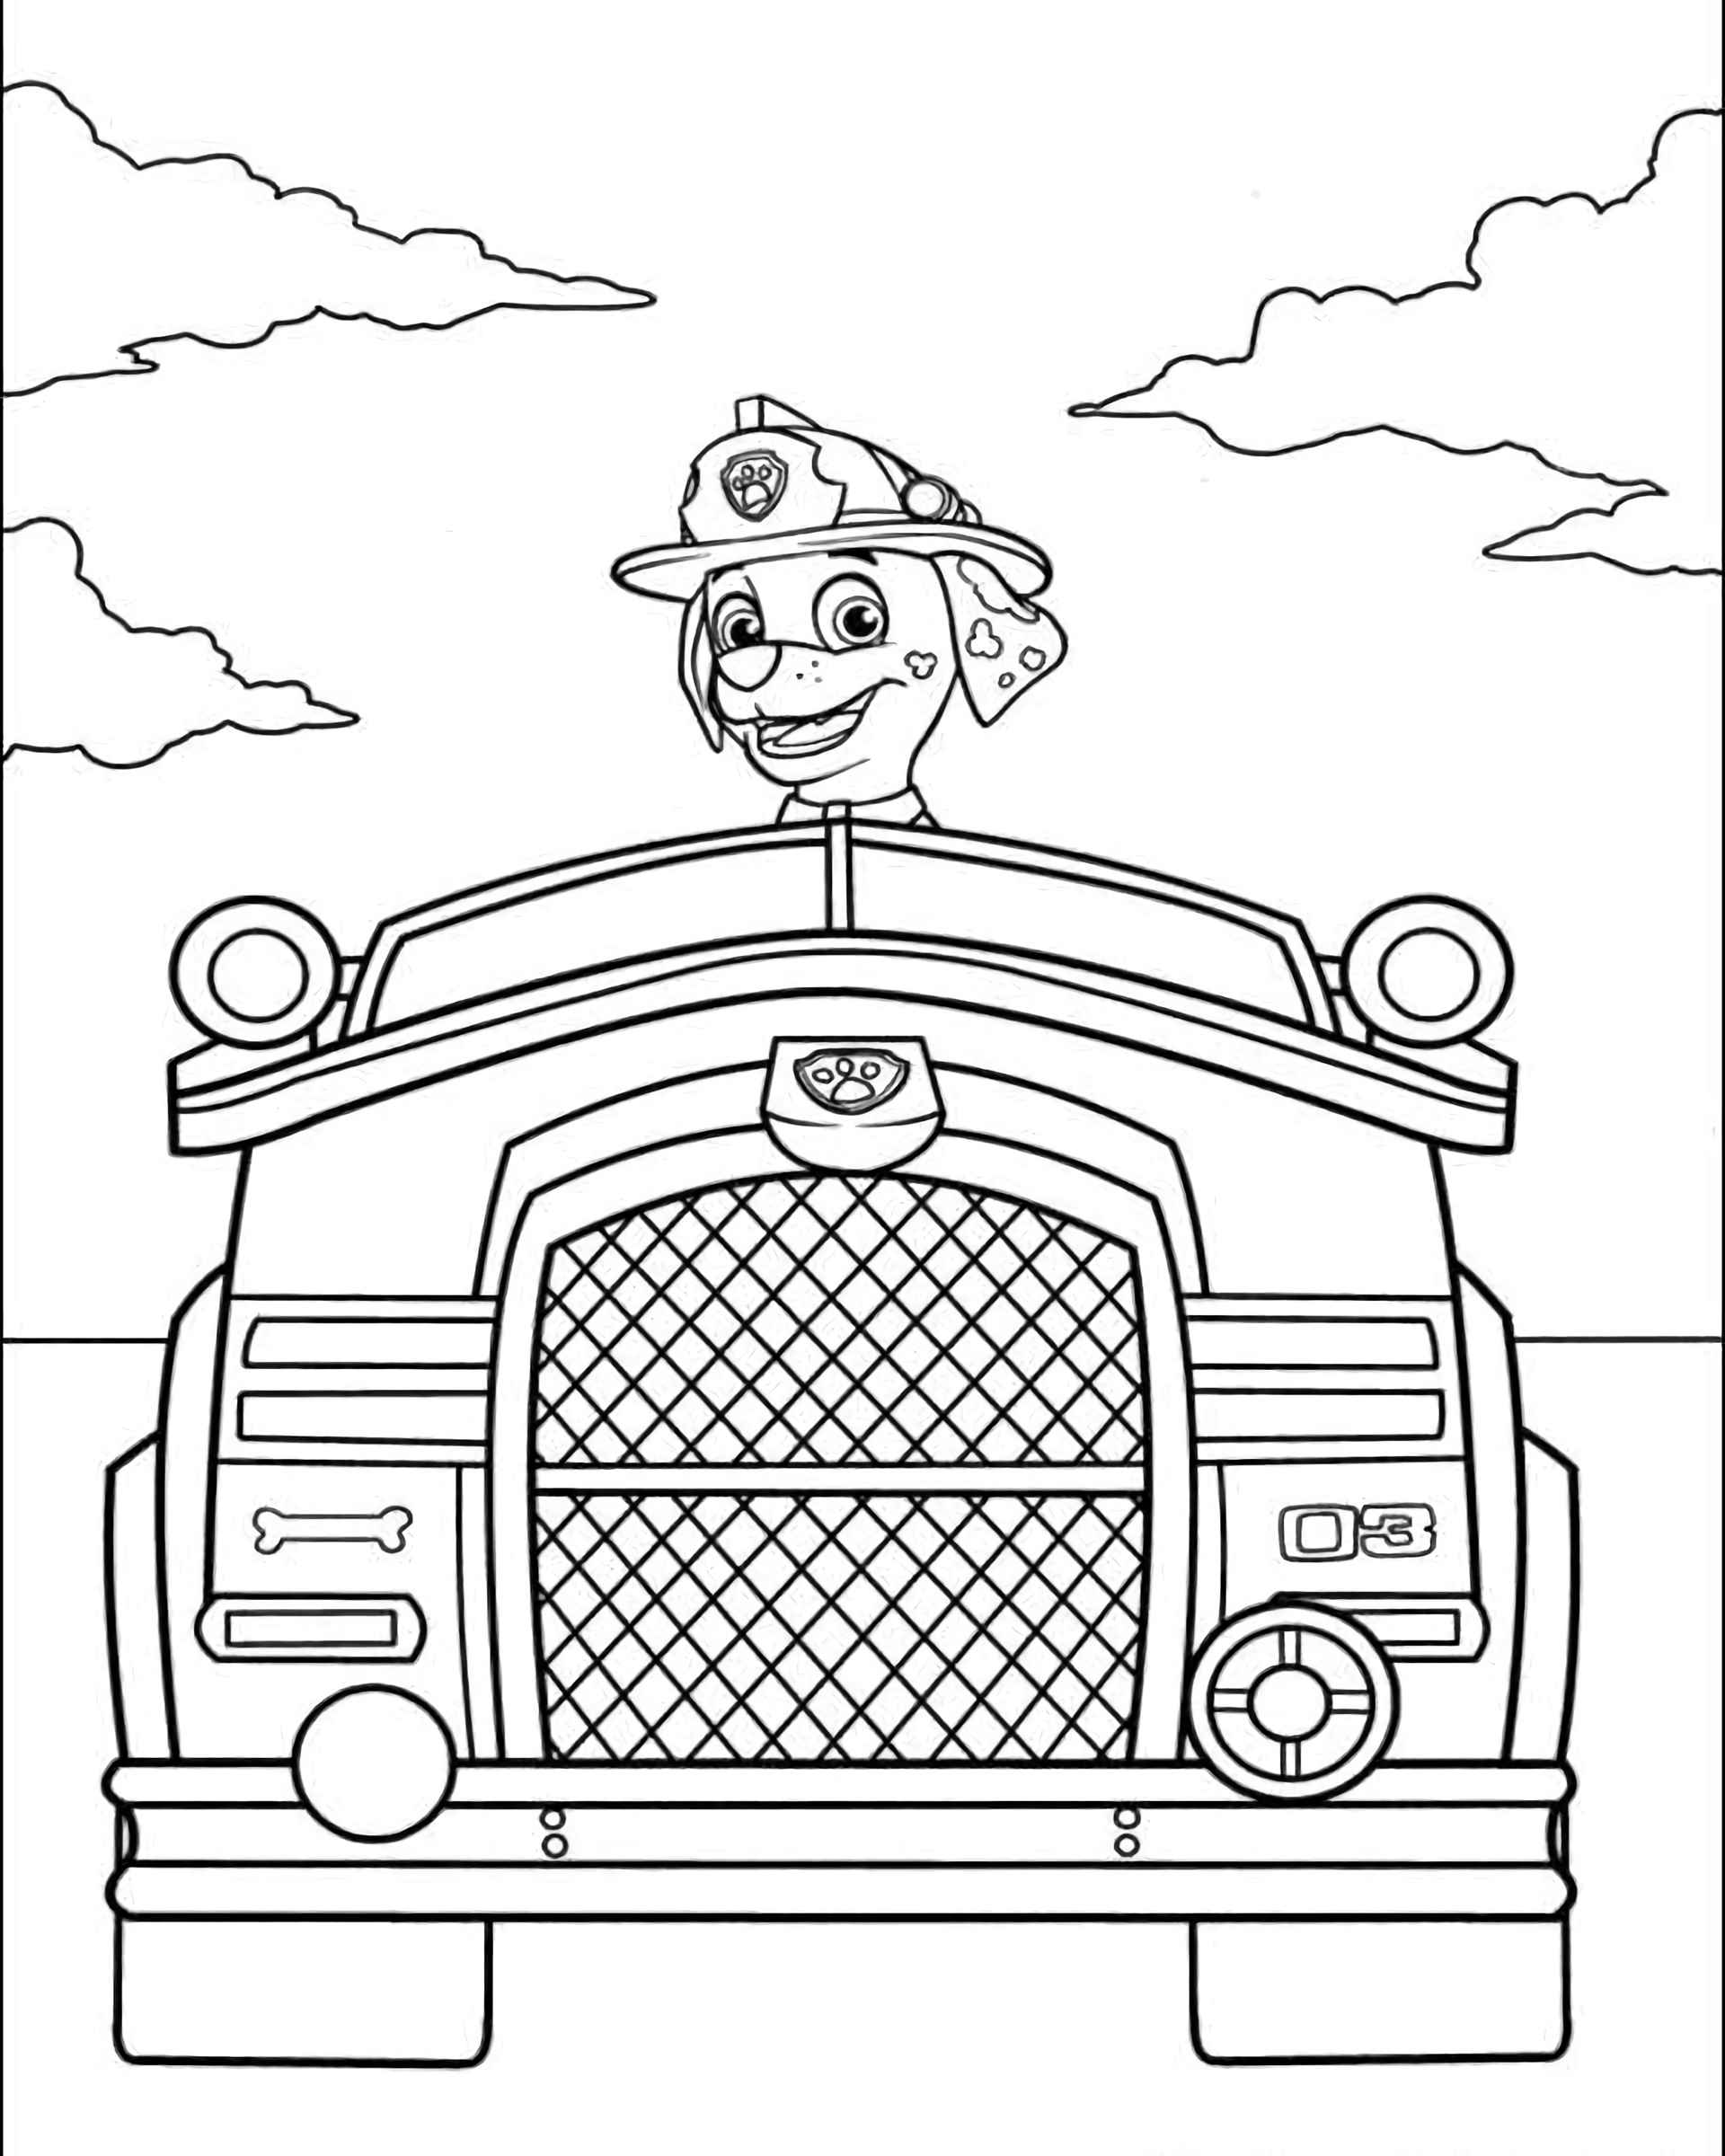 Coloring Page Paw Patrol Marshal By Car